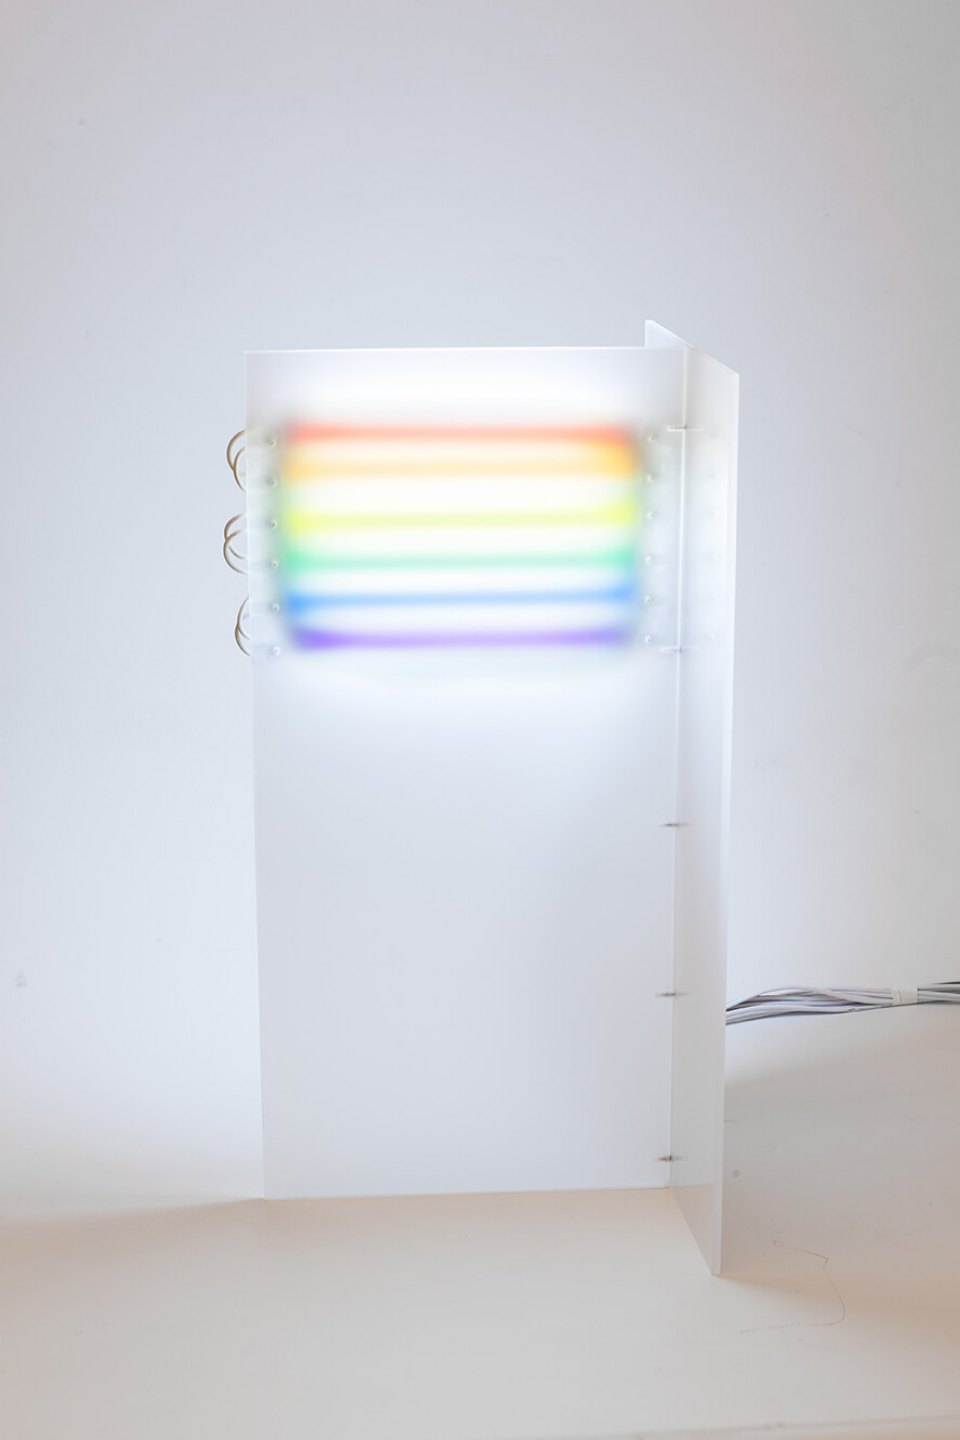 Roberto Winter, <em>Paulista</em>, 2014, modified fluorescent lamps, acrylic and electric installation, 50 × 23 × 23 cm - Mendes Wood DM